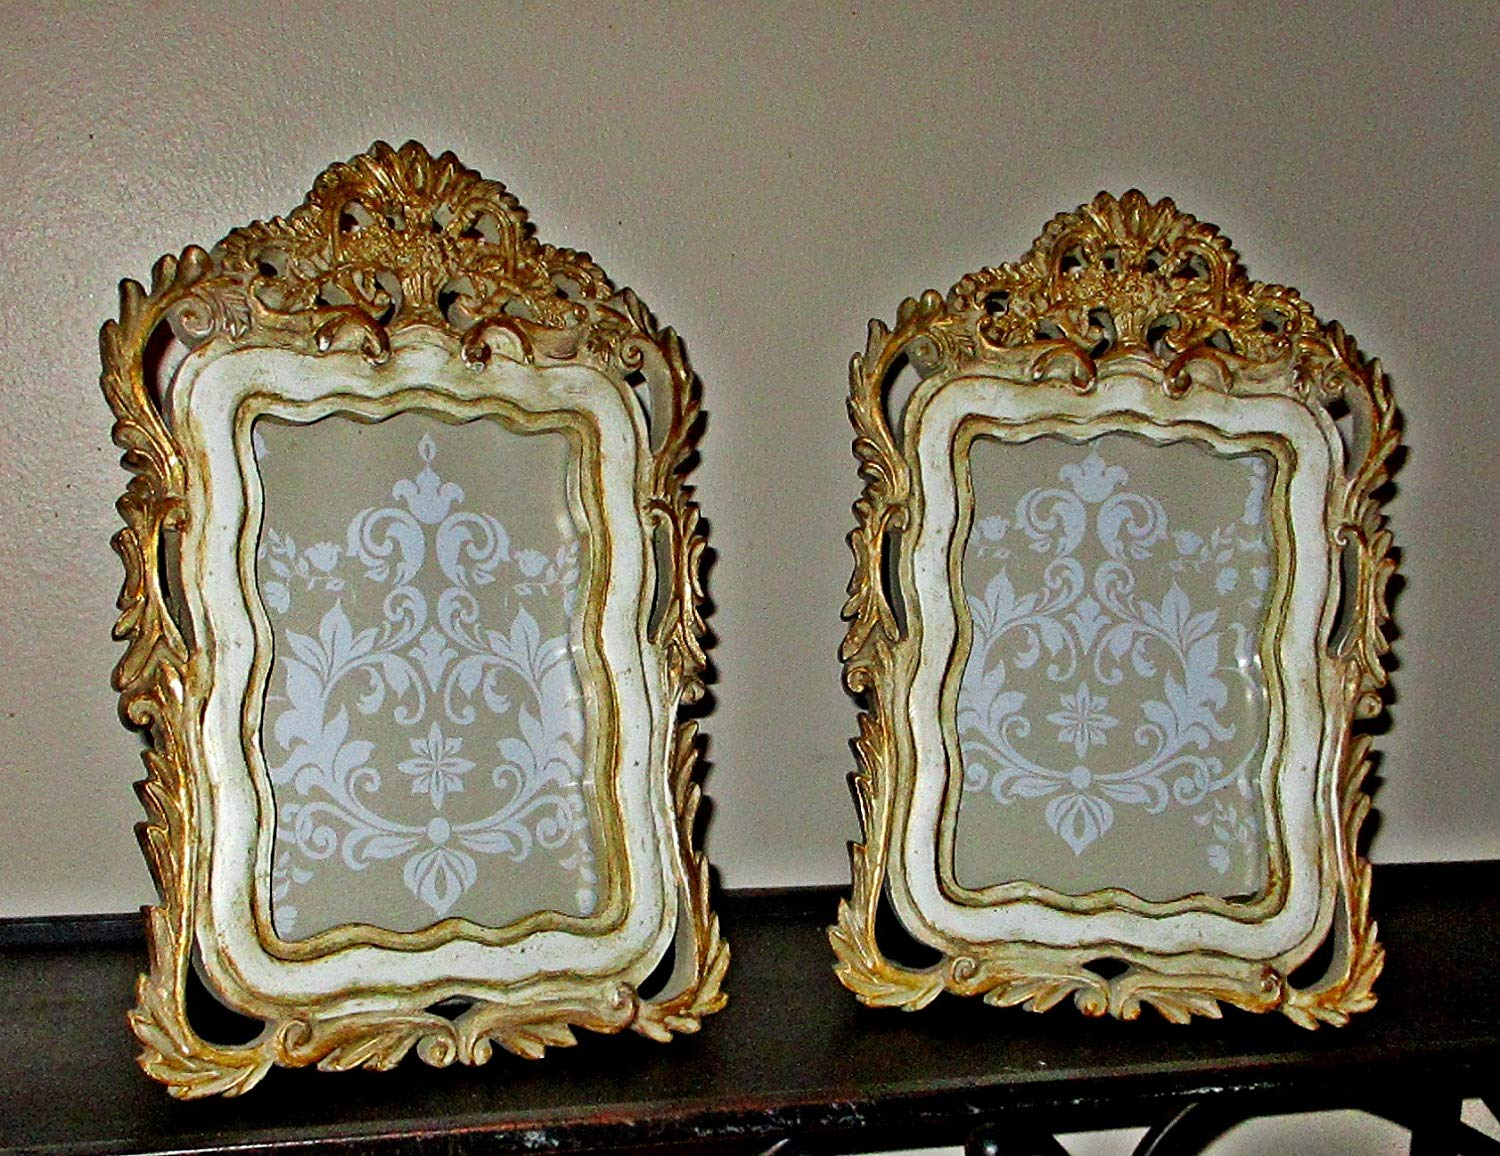 Picture Frames, Upcycled, Vintage, Baroque Style, Gold and Ivory, Resin, Hand Painted, Weddings, Anniversaries, Mediterranean, French, English, Tabletop Frames, Ornate Design